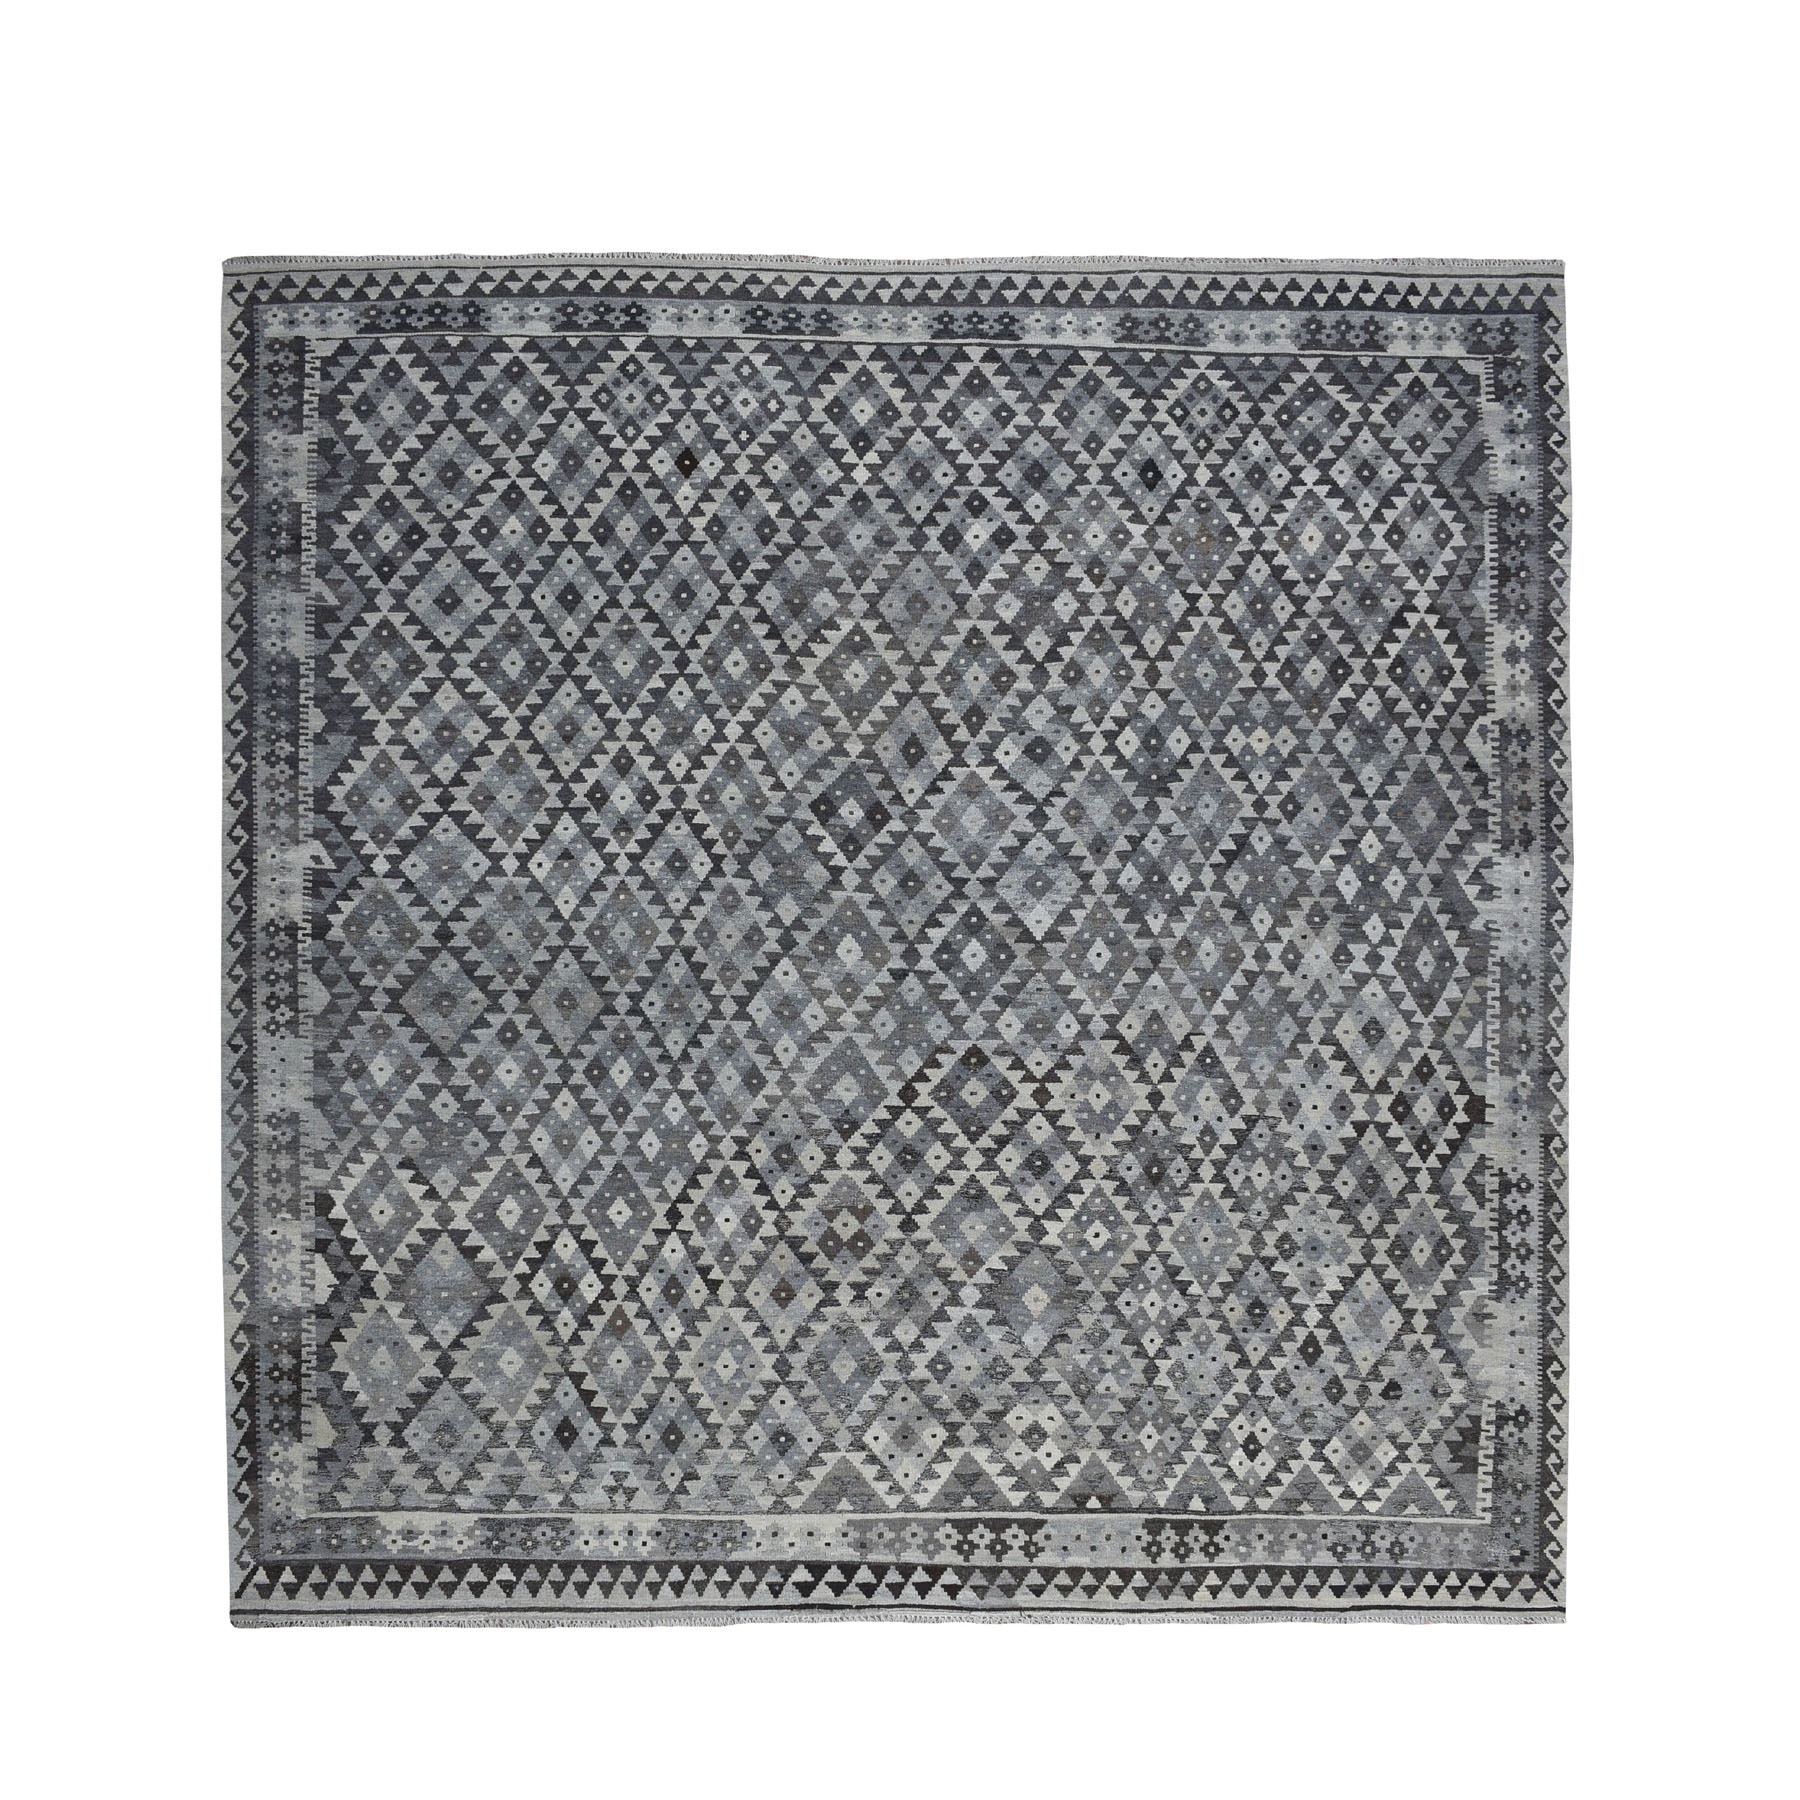 """10'2""""x10'2"""" Square Undyed Natural Wool Afghan Kilim Reversible Hand Woven Oriental Rug 53440"""